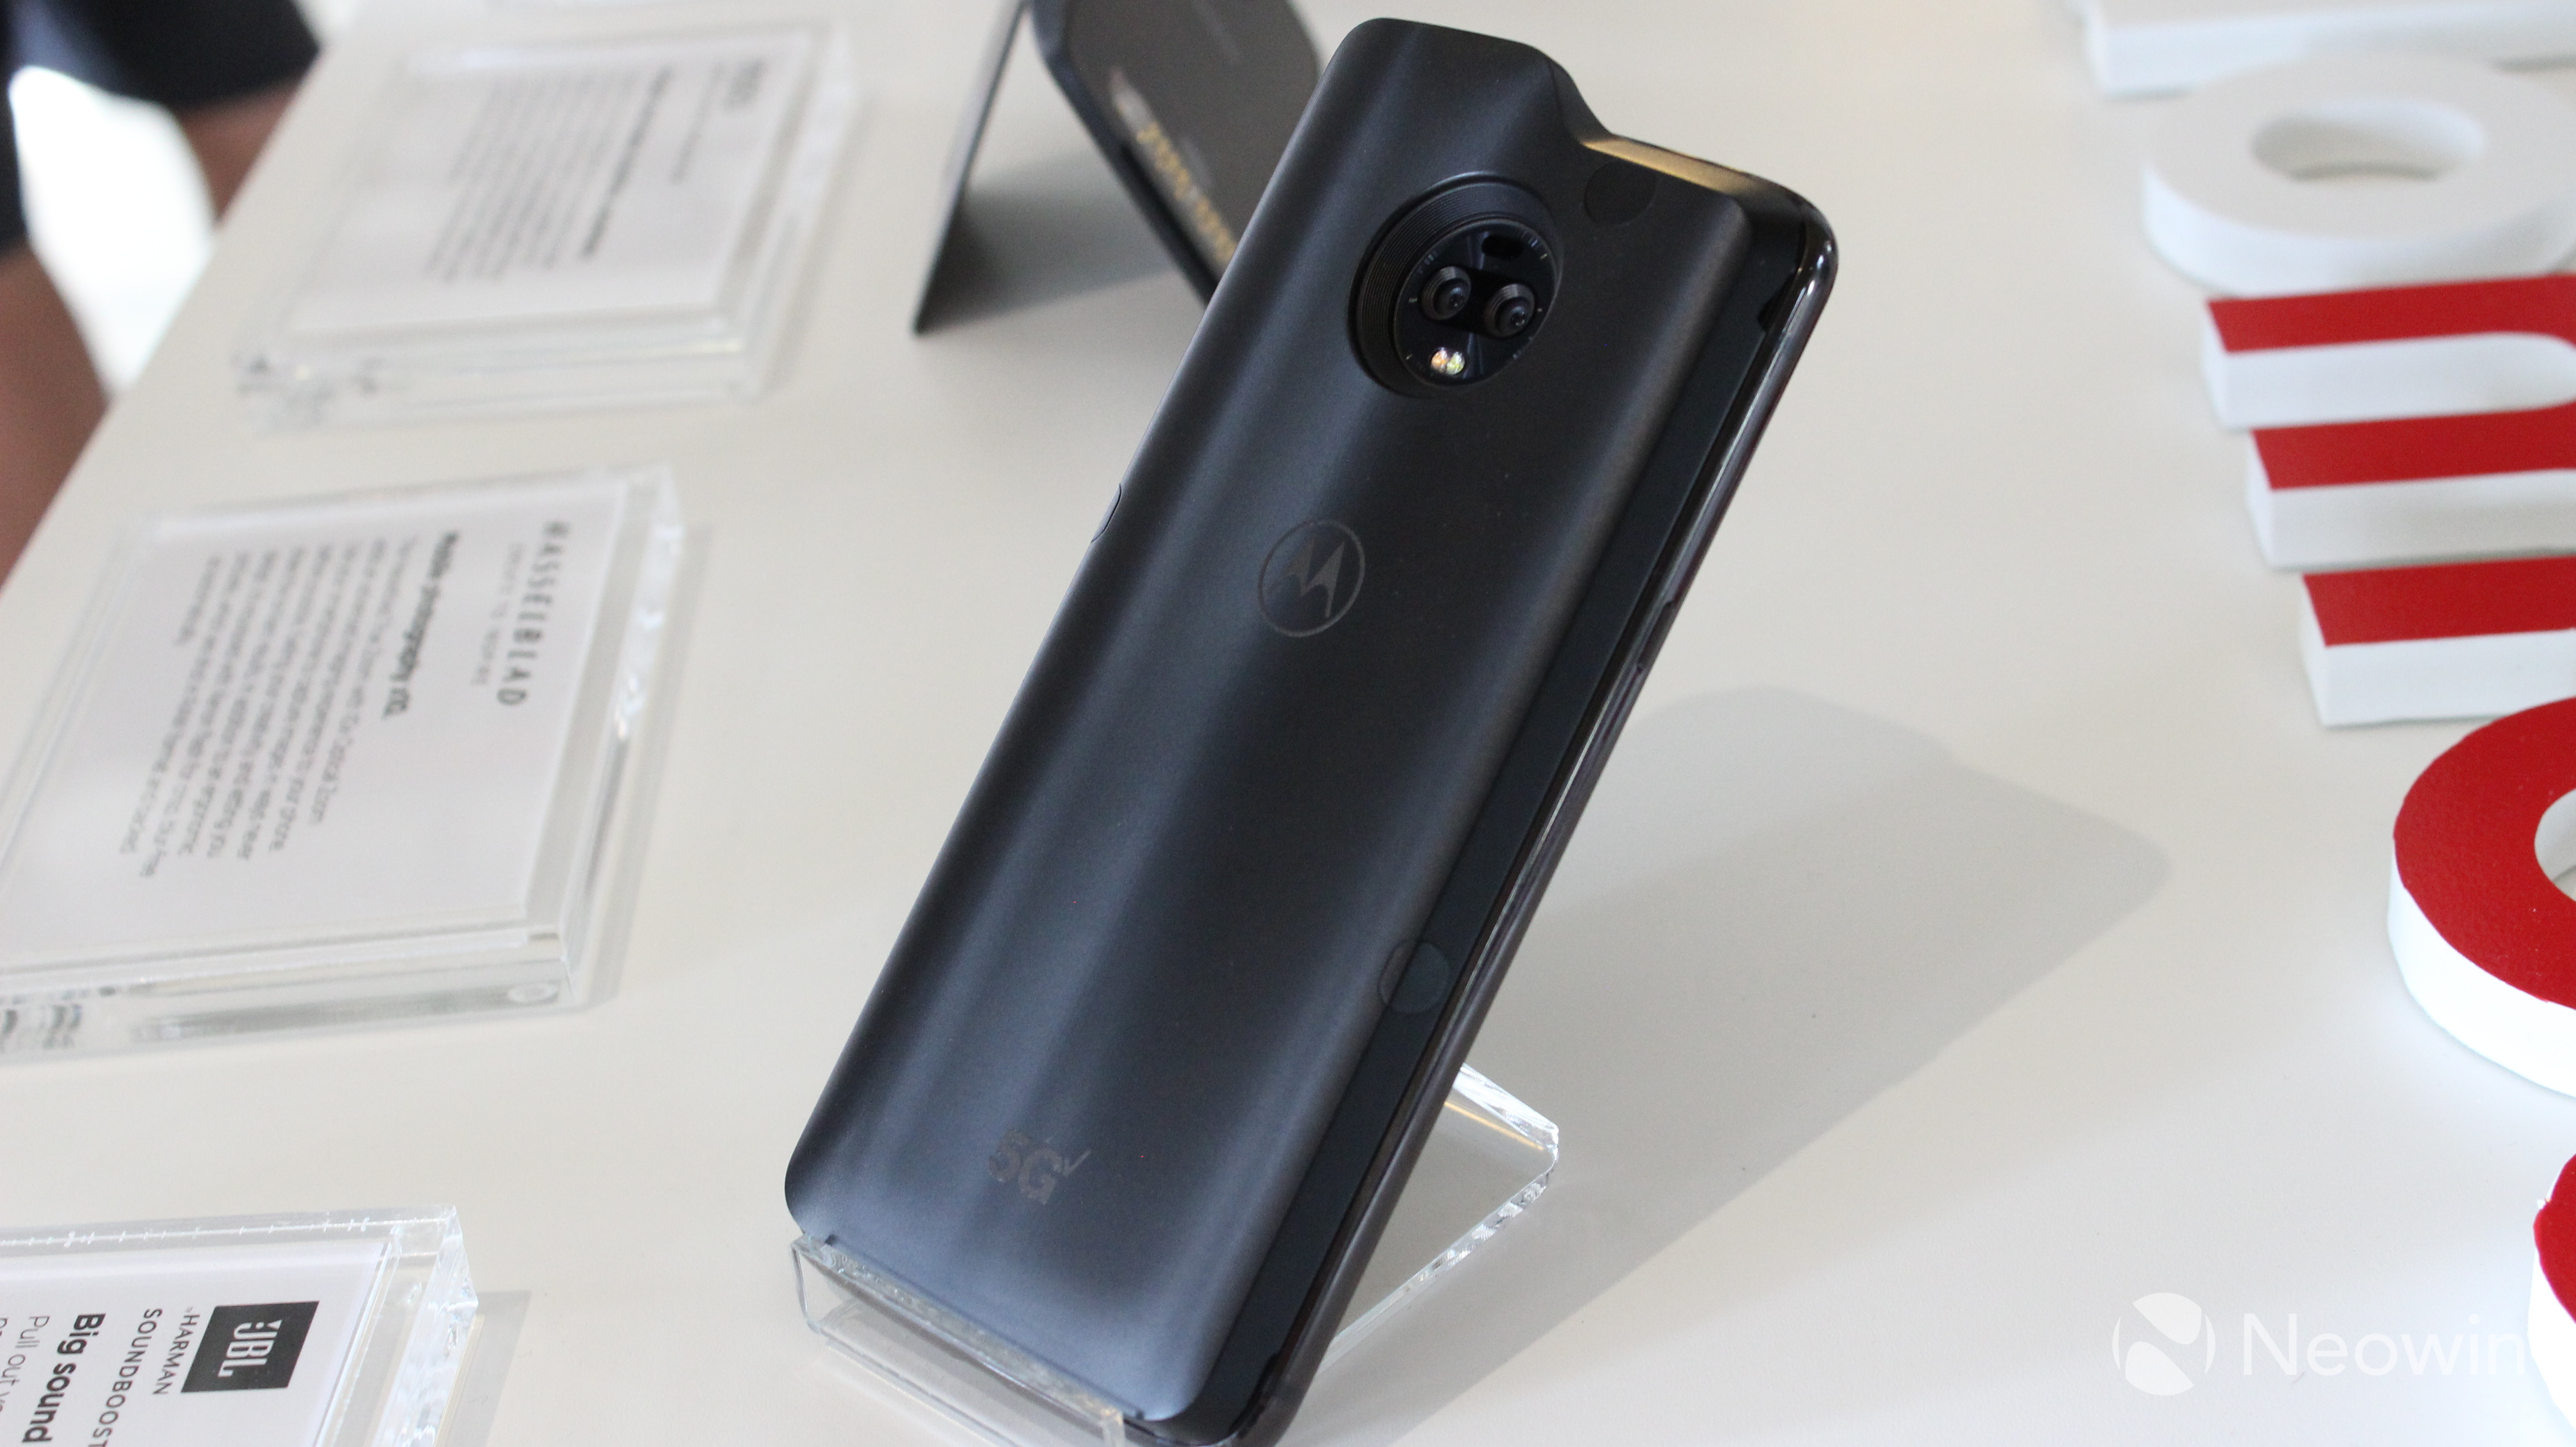 Hands on with the Moto Z3 and Motorola's 5G Moto Mod - Neowin